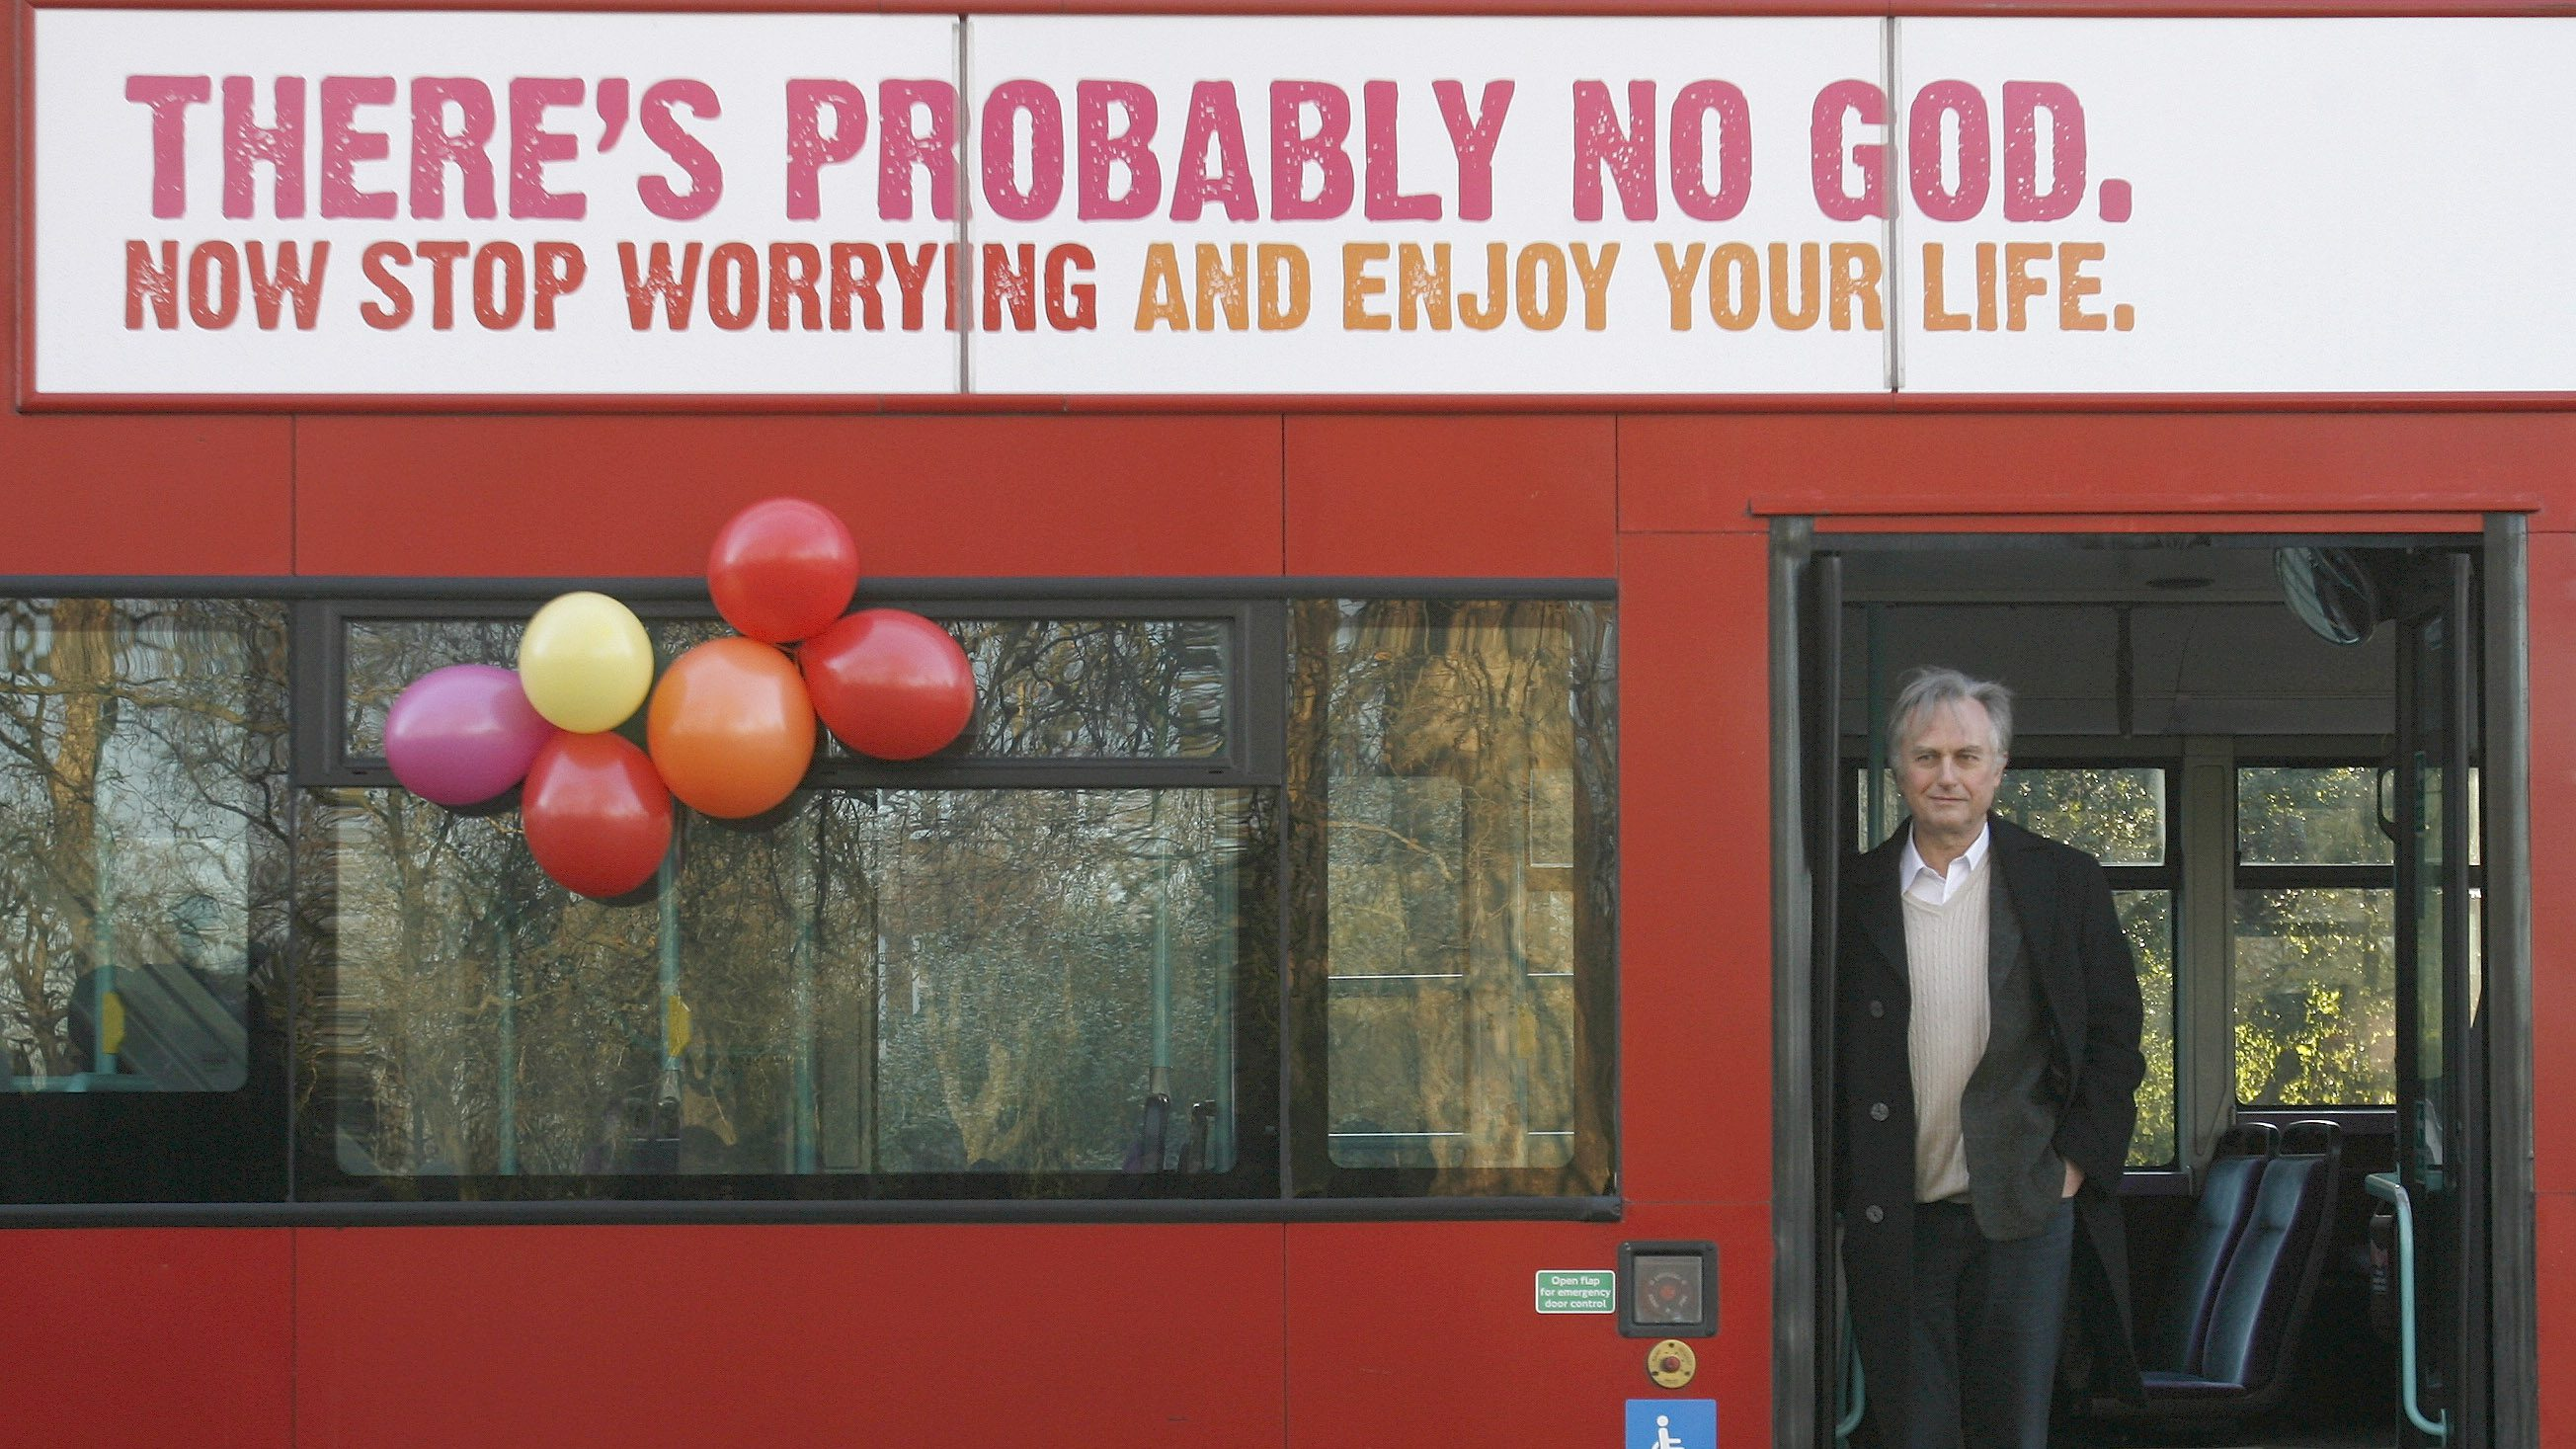 British author Richard Dawkins, who wrote The God Delusion,  stands on a bus at the launch of an atheist advertising campaign, in London January 6, 2009. The UK's first atheist advertising campaign, the Atheist Bus Campaign, launched on Tuesday.     REUTERS/Andrew Winning (BRITAIN) - RTR233N0